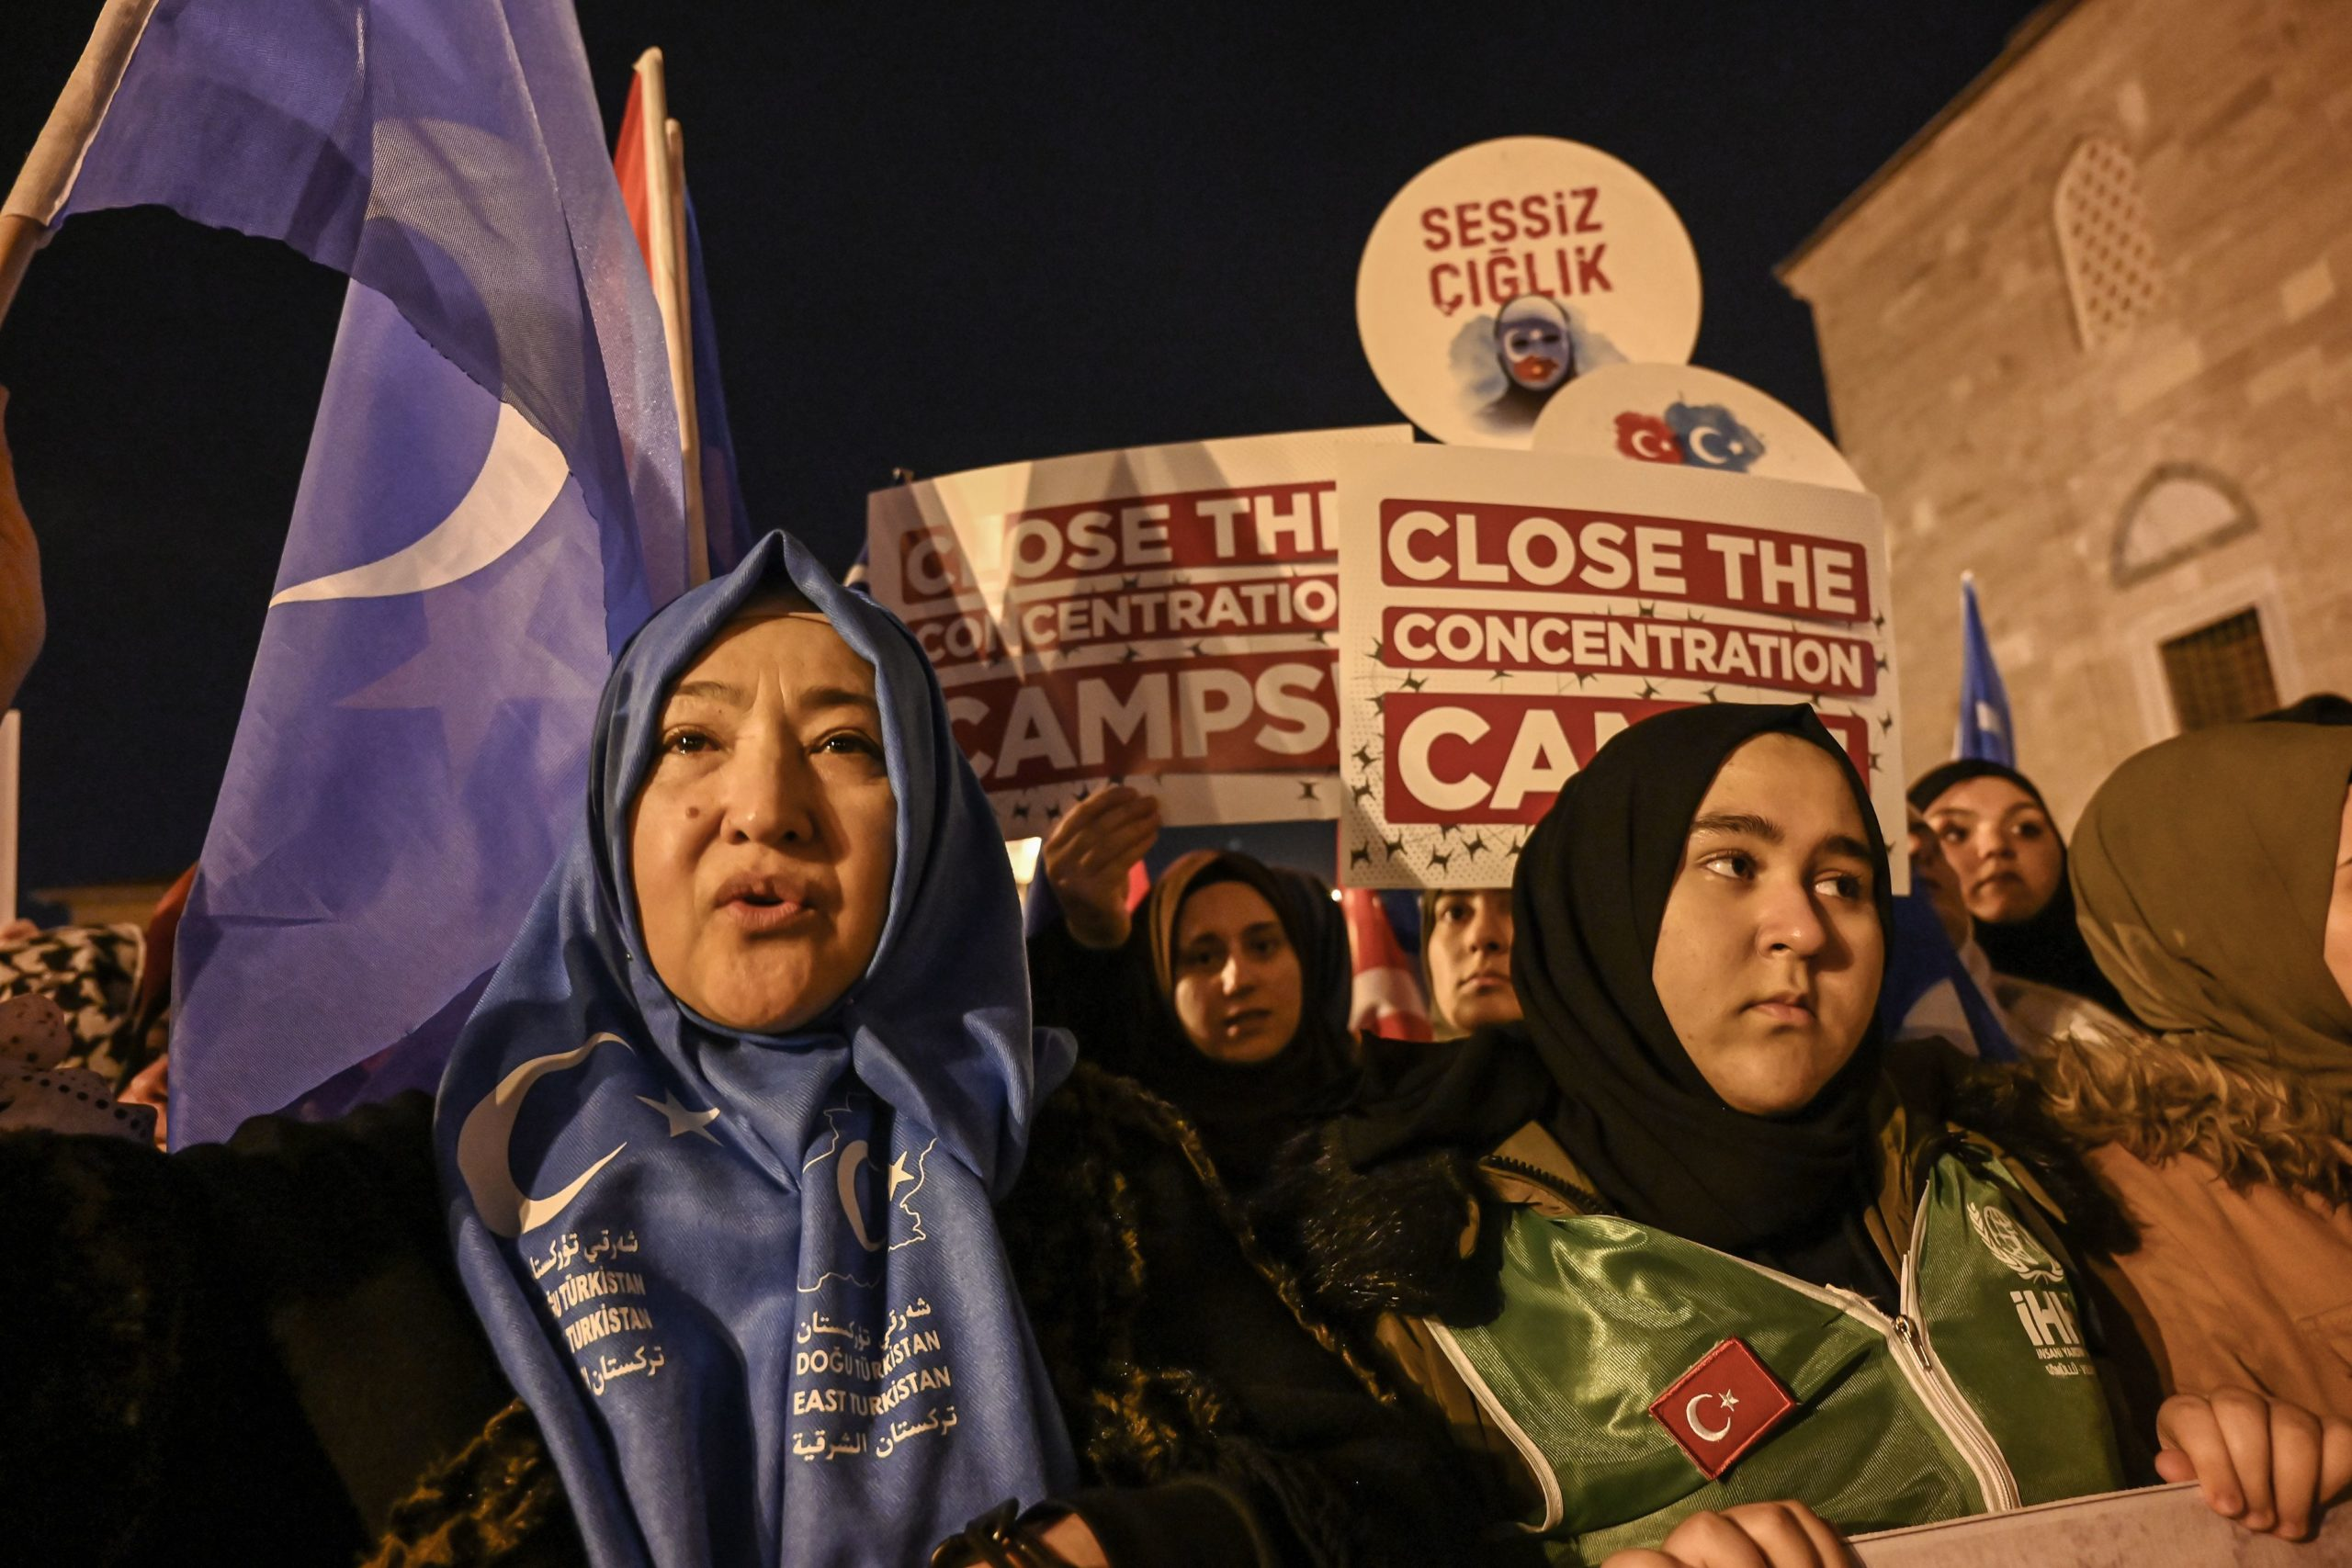 Supporters of China's Muslim Uighur minority wave the flag of East Turkestan and hold placards on December 20, 2019 during a demostration at Fatih in Istanbul. - More than 1,000 protesters marched Friday in Istanbul to protest against China over its treatment of mainly Muslim Uighurs in Xinjiang, an AFP correspondent said.They called for an end to the crackdown in China's northwestern region, where upwards of one million Uighurs and other mostly Muslim minorities are believed to be held in re-education camps. (Photo by Ozan KOSE / AFP) (Photo by OZAN KOSE/AFP via Getty Images)